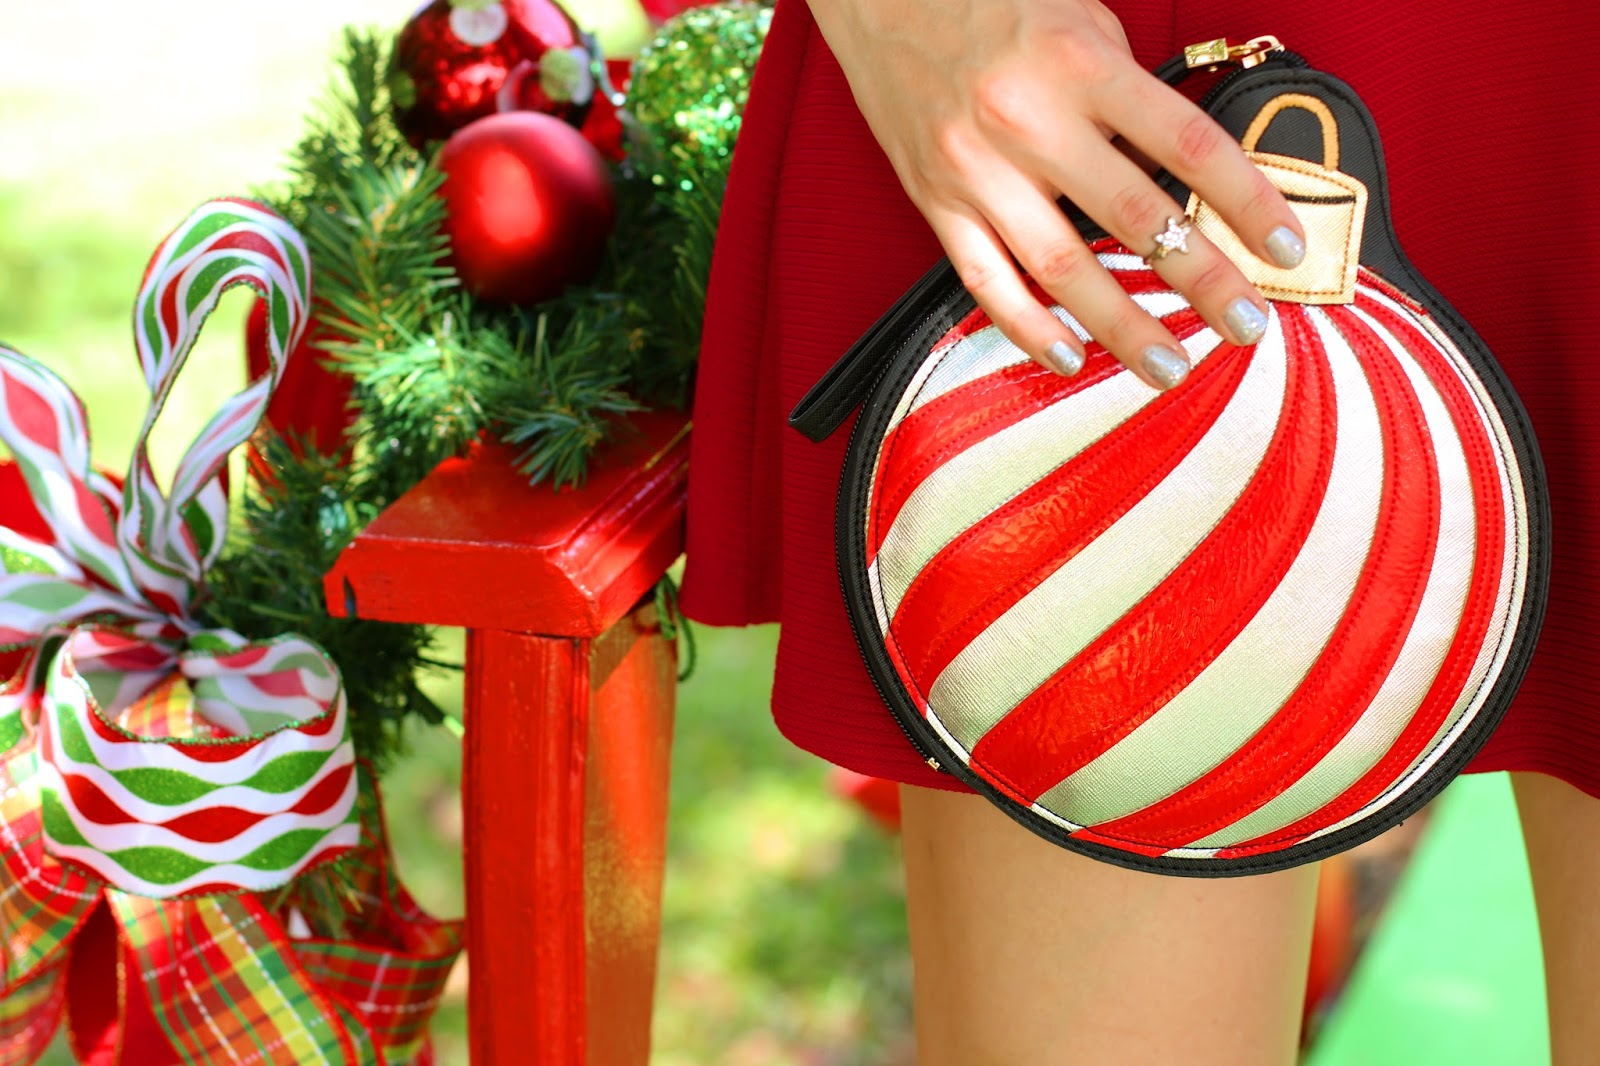 In love with this Christmas ornament clutch!